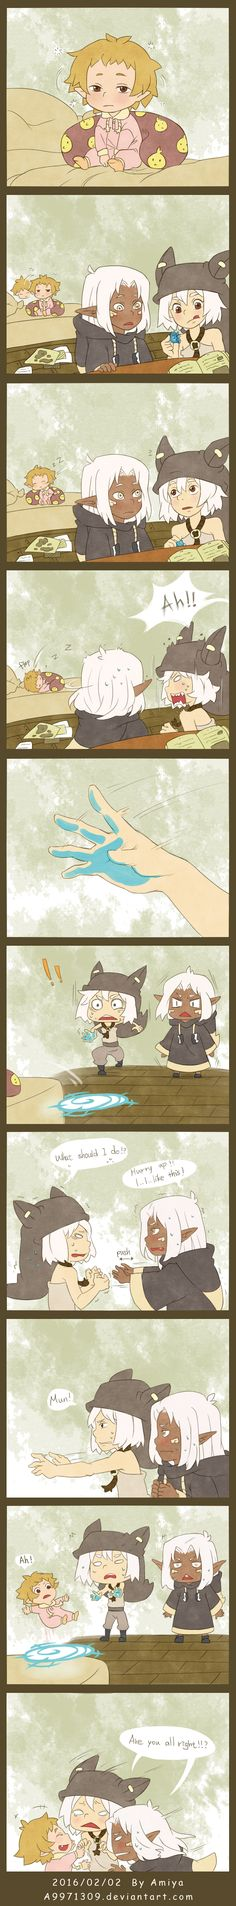 Wakfu short comic - Brothers're daily by a9971309 on DeviantArt